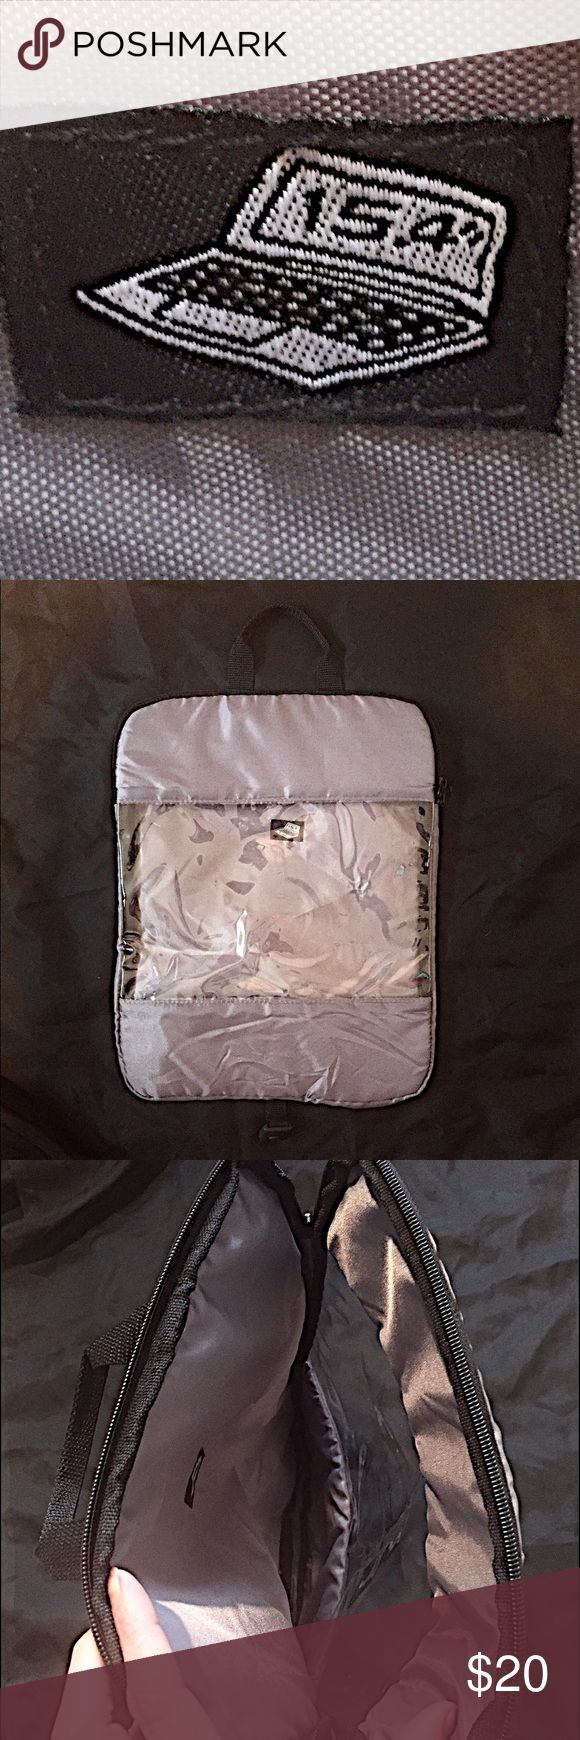 """💻Laptop Protective Case💻 Laptop protective case. Can be carried by itself or inserted into a backpack, or bag. Zip top closure, with clear window insert. Small handle at the top for easy lift and removal. There's an attached clip that can hook into any snap clip on a traditional bag, or inside a backpack if it has one. Removable shoulder harness strap. This will fit up to a 15.4"""" laptop or iPad! Brand New Never Used! Bags Laptop Bags"""